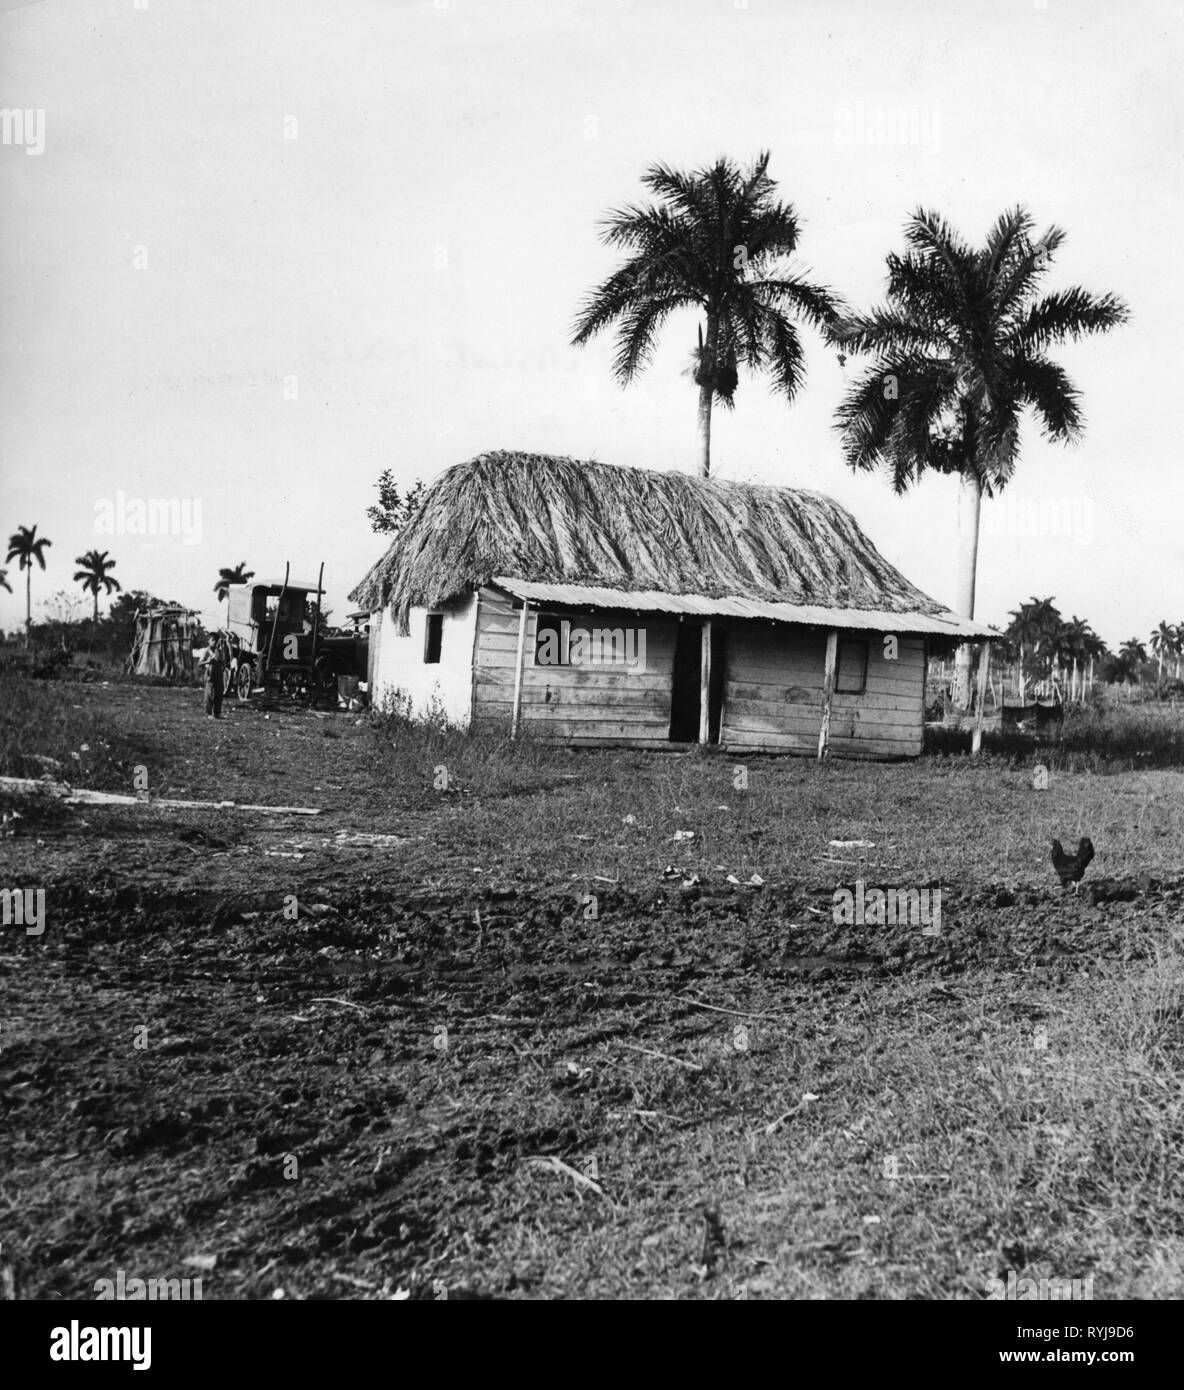 geography / travel, Cuba, architecture, peasant house, exterior view, circa 1950, Additional-Rights-Clearance-Info-Not-Available - Stock Image